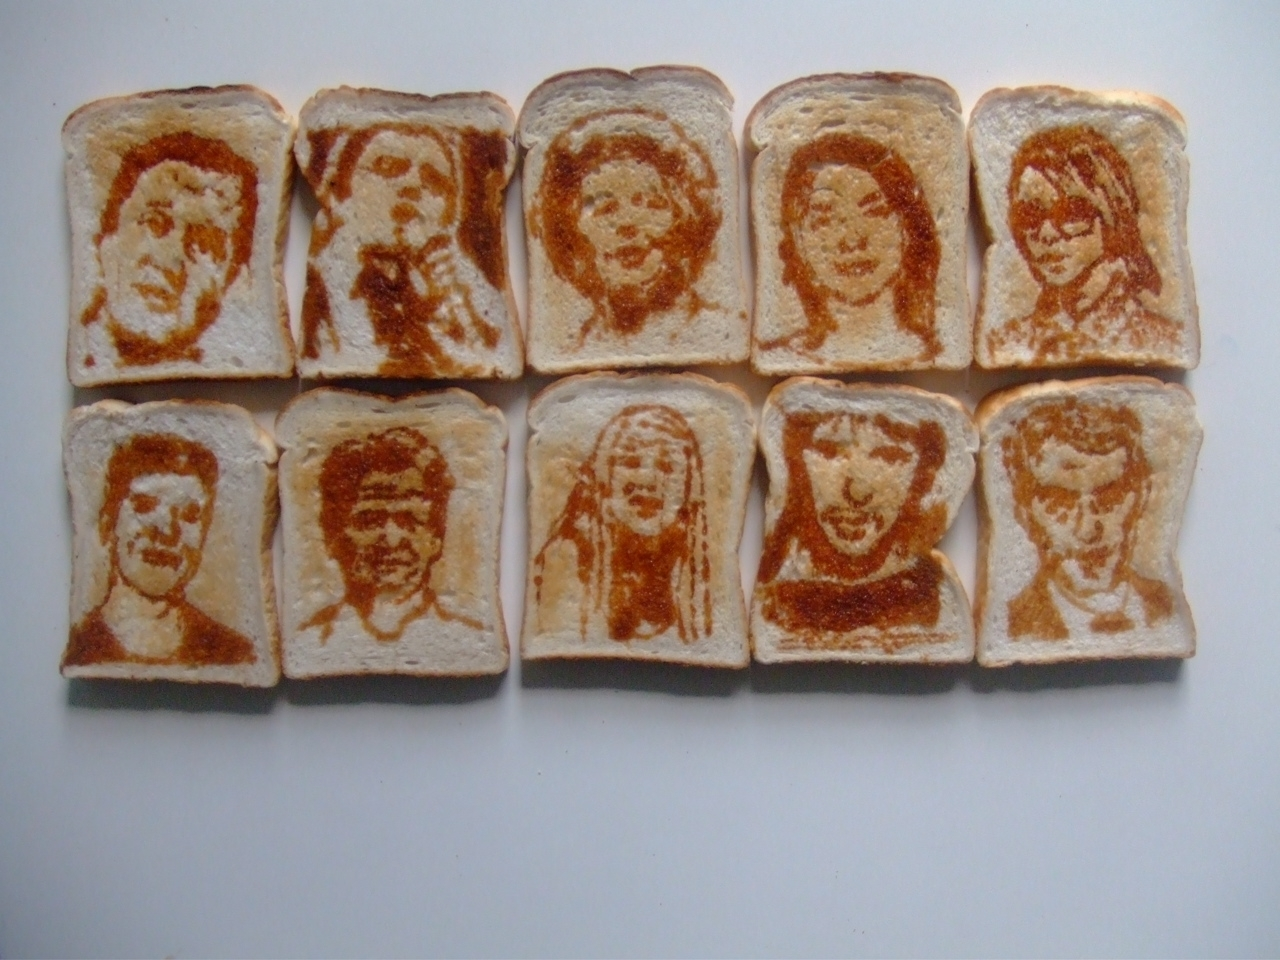 Thatcher on toast?